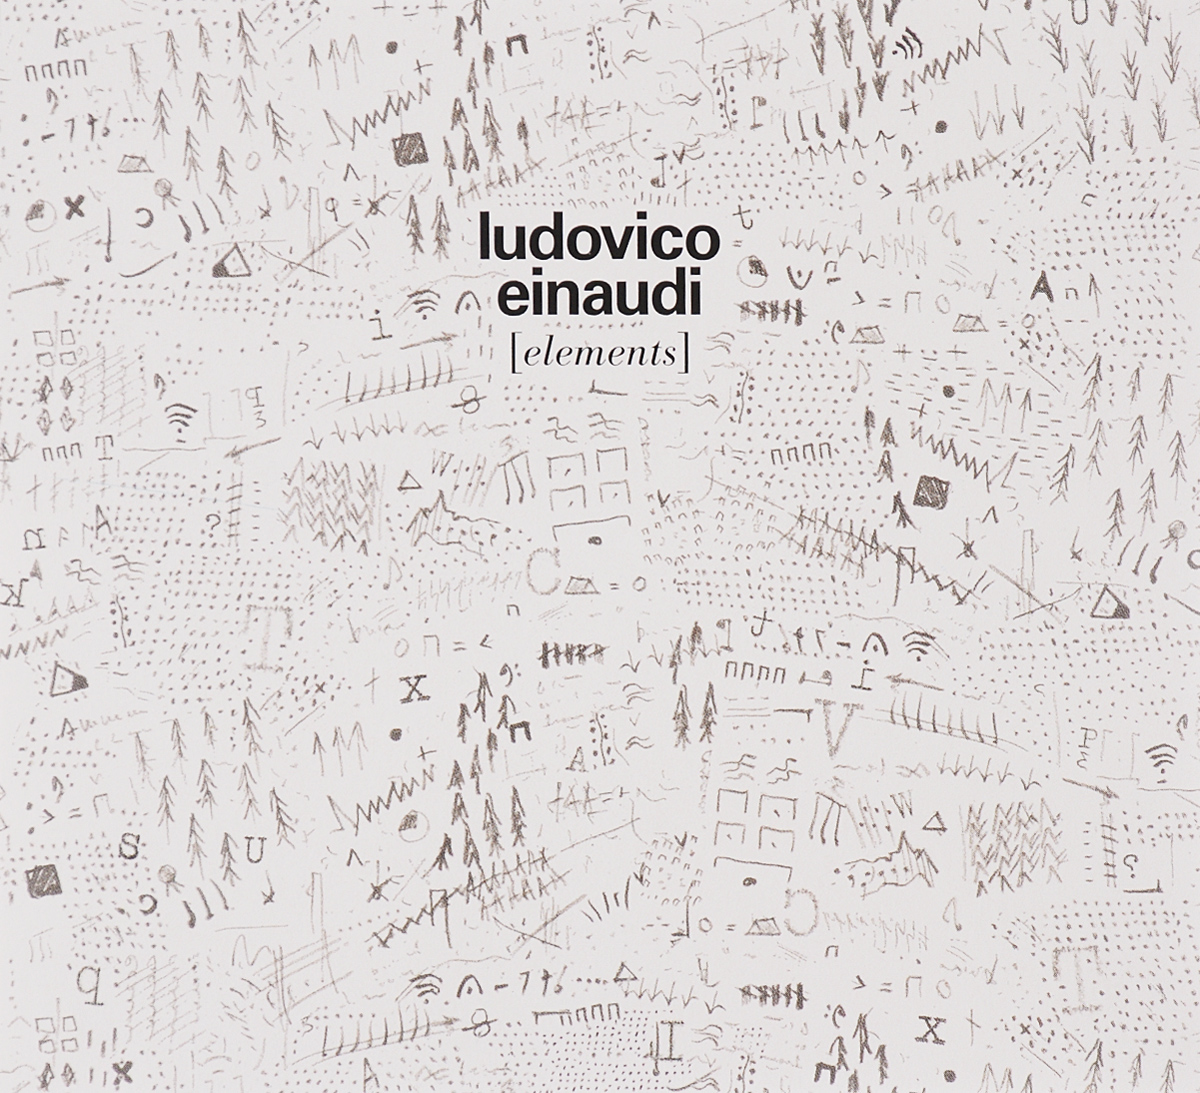 Людовико Эйнауди Ludovico Einaudi. Elements